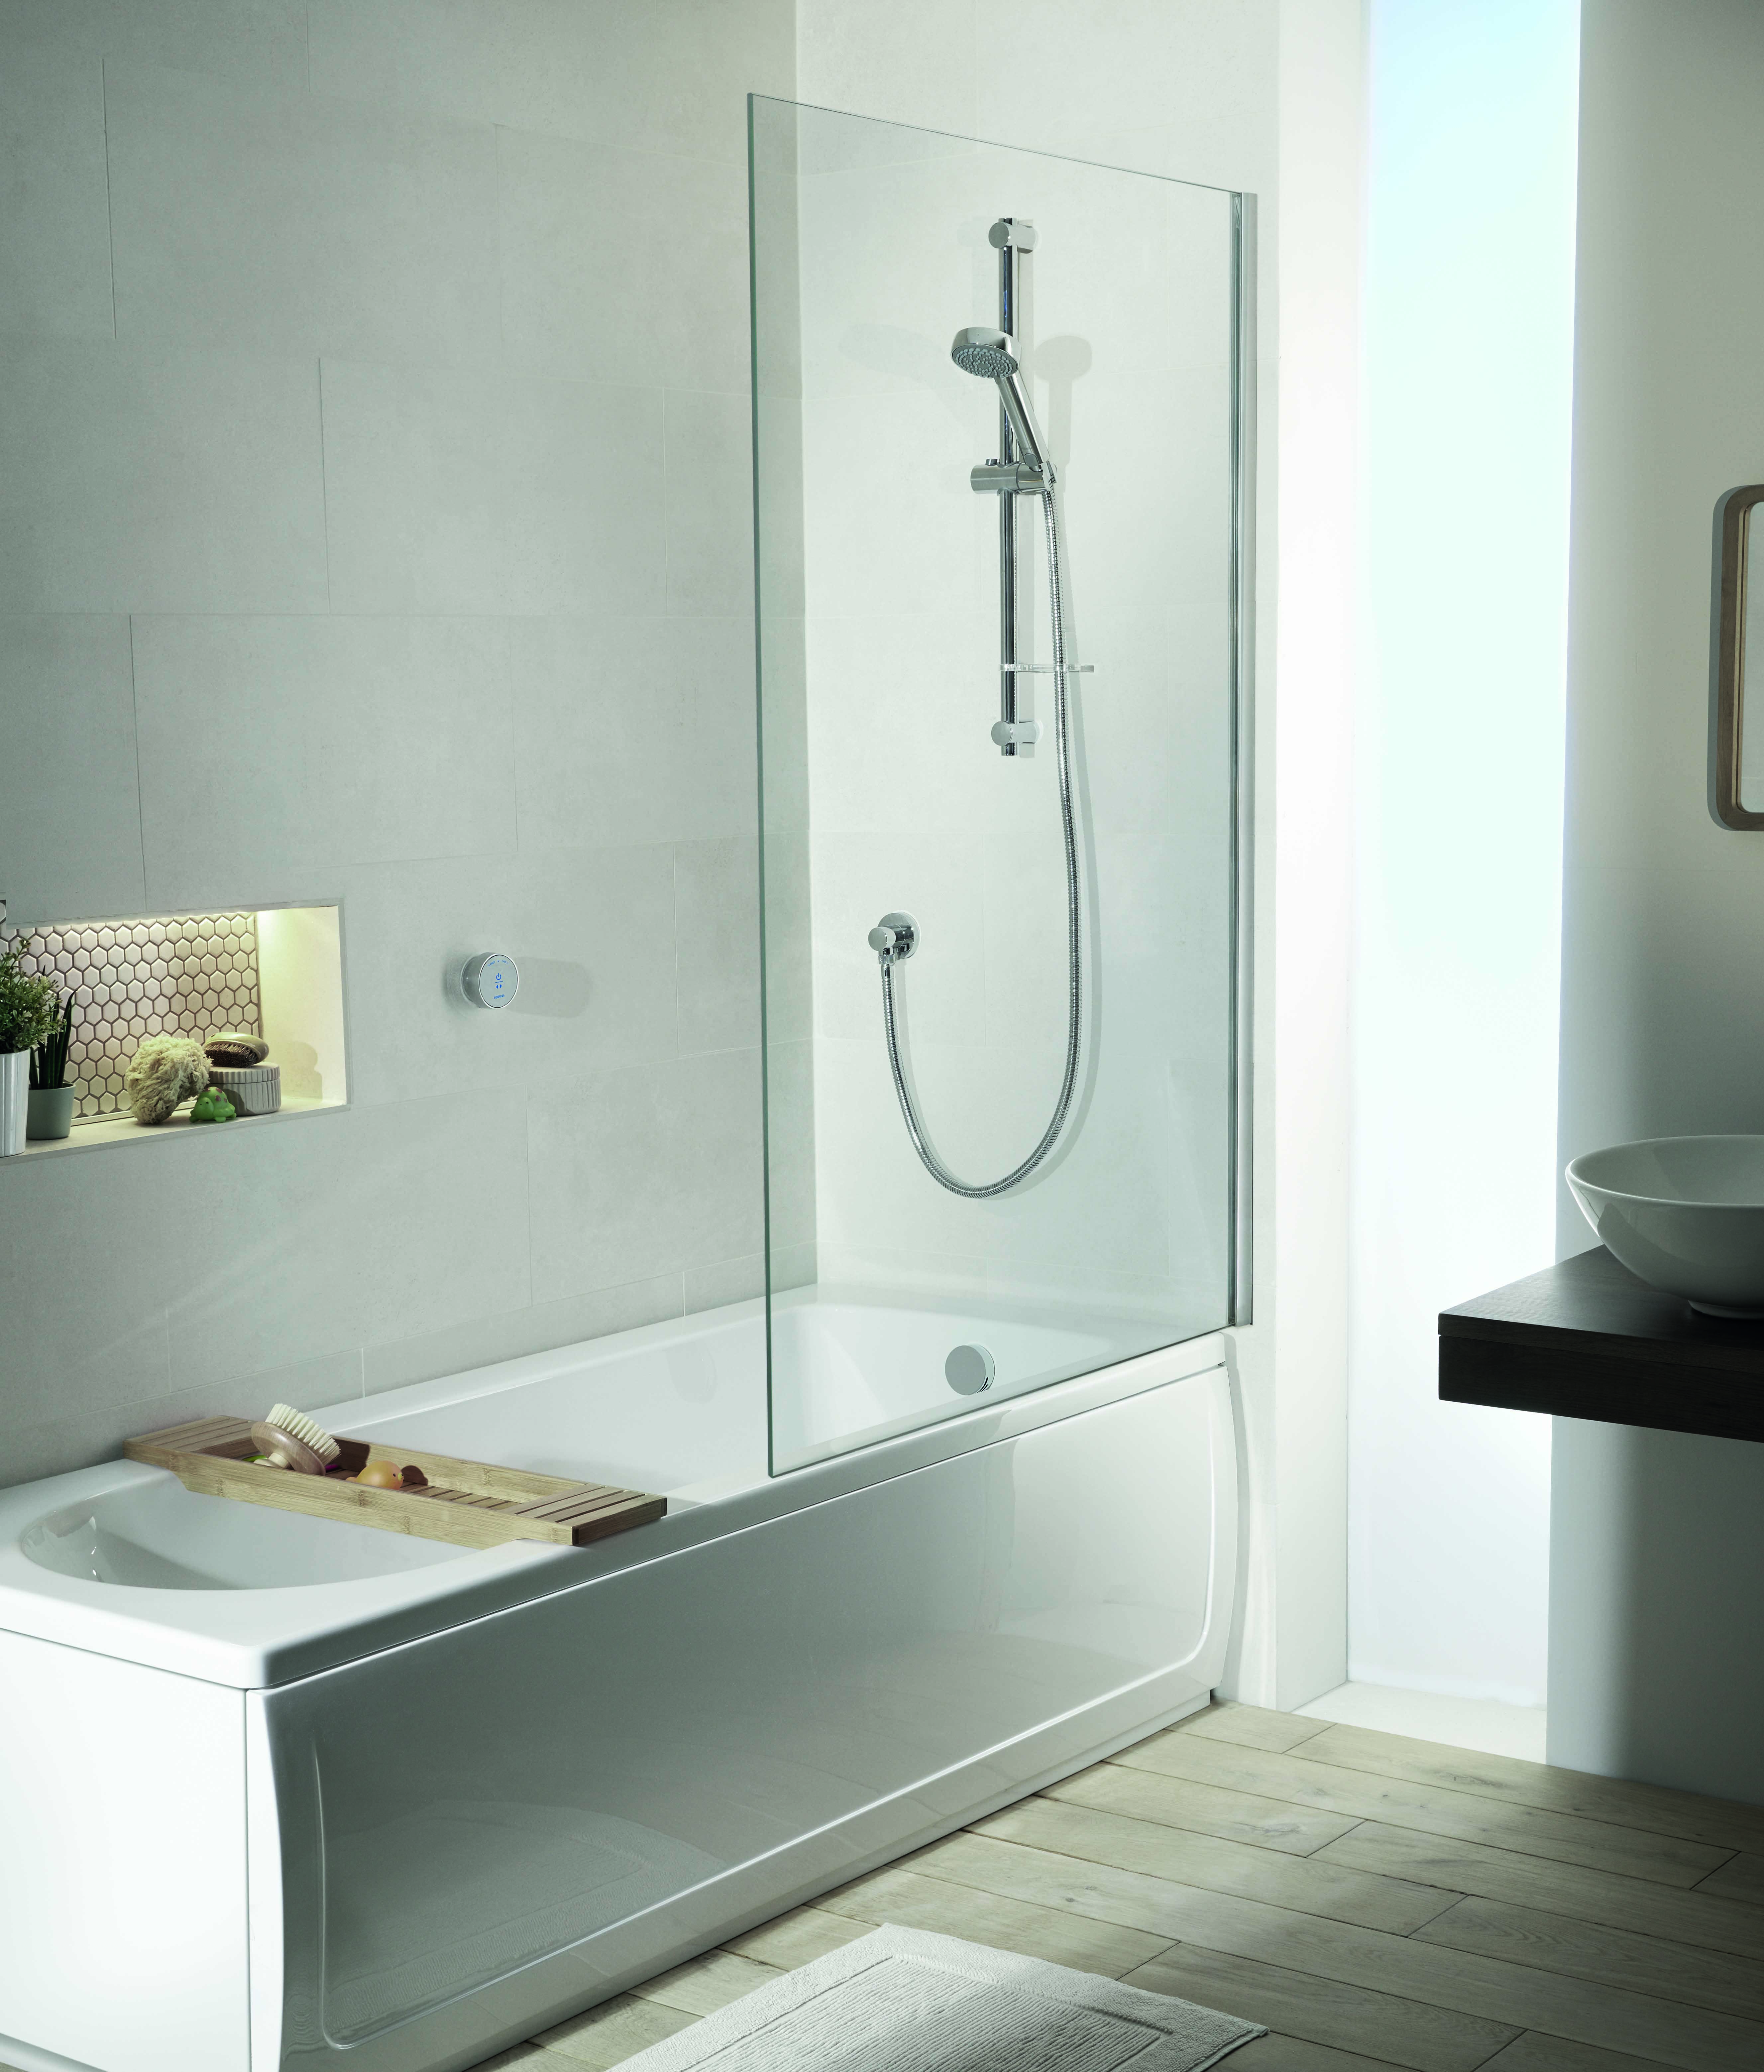 Smart Shower vs. Digital Shower: What's the difference?